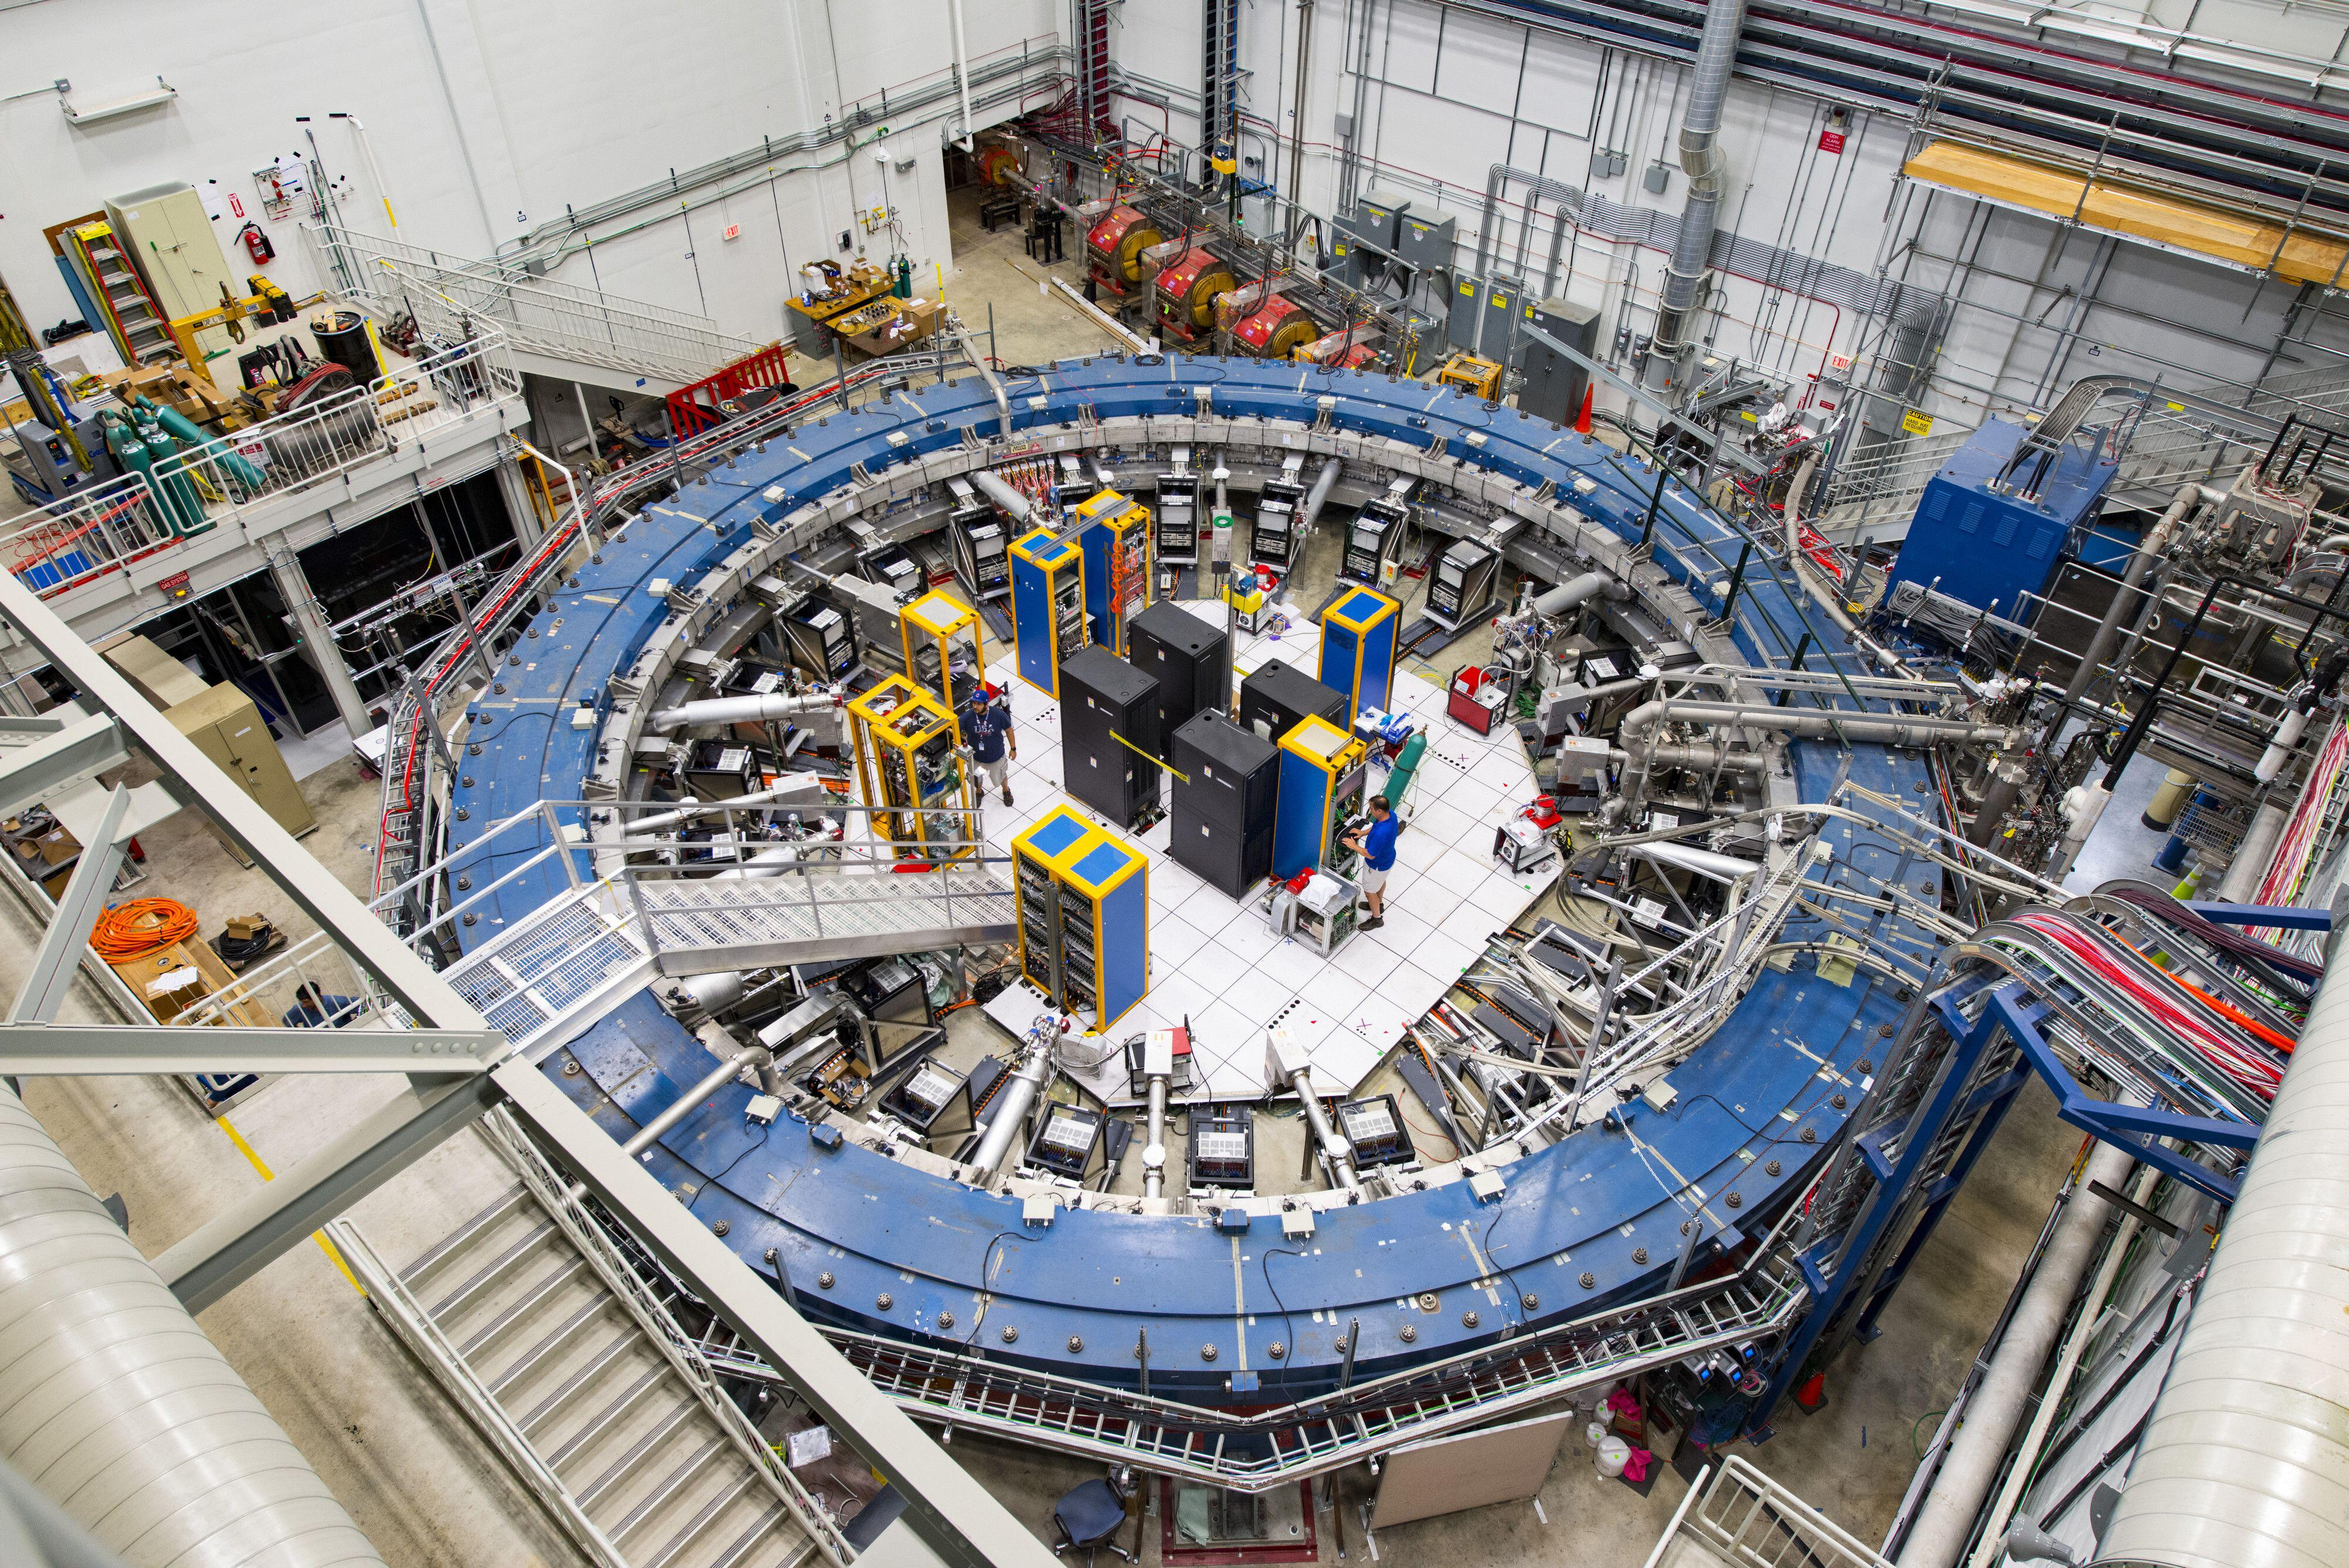 The Fermilab Muon Measurement Might or Might Not Point to New Physics, But...